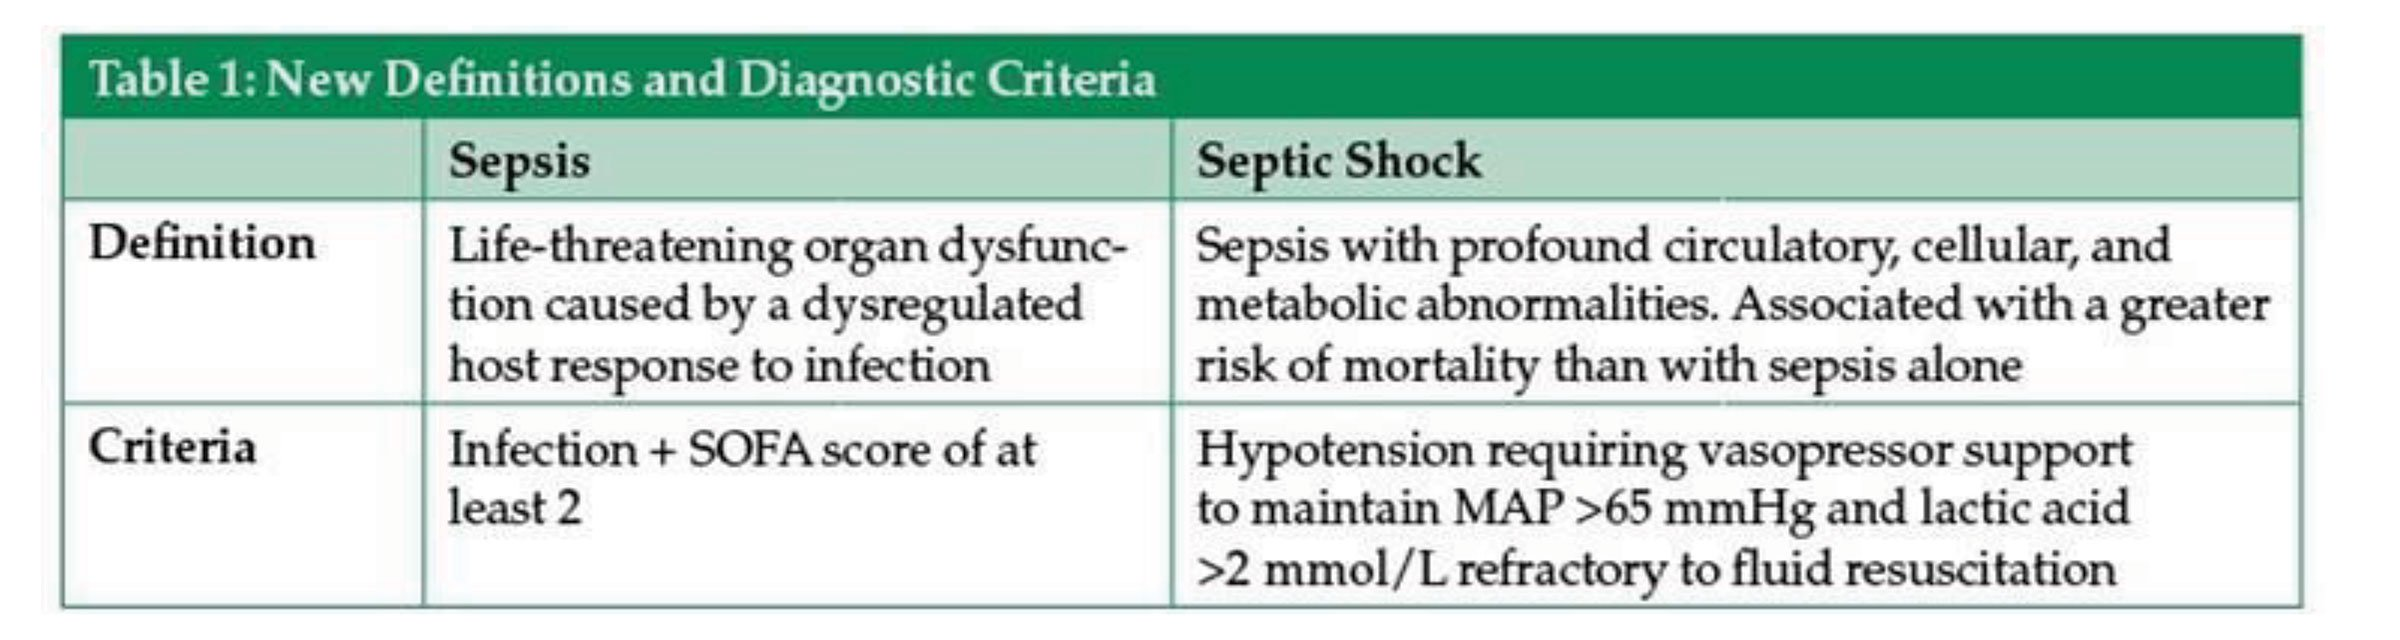 Sepsis Table 1